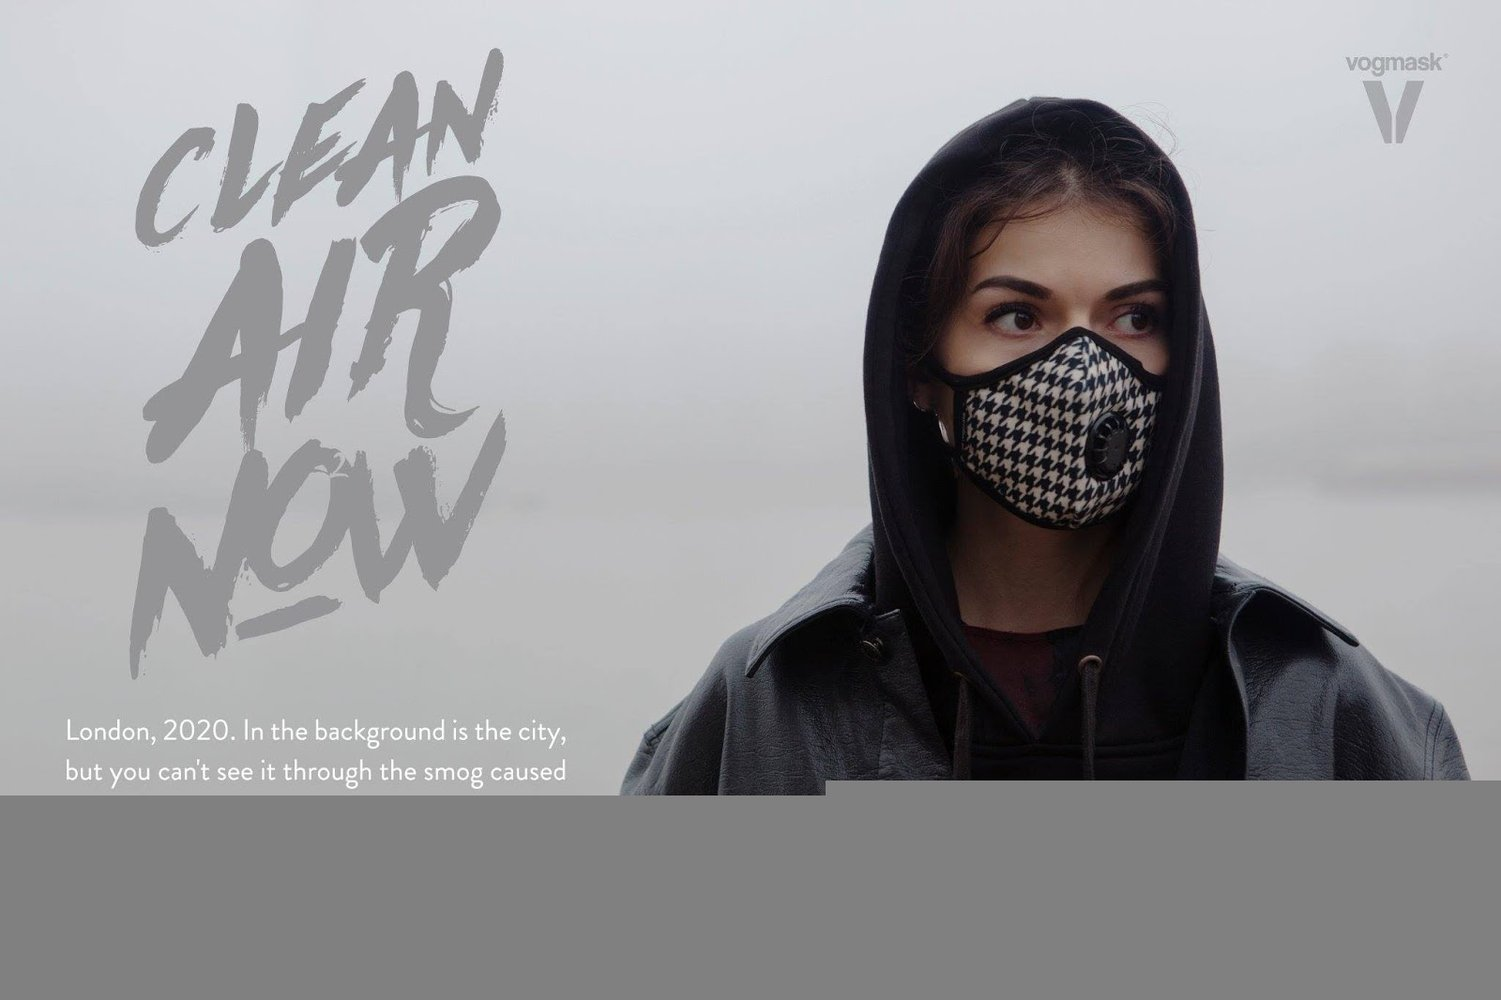 Clean air now - you are what you wear